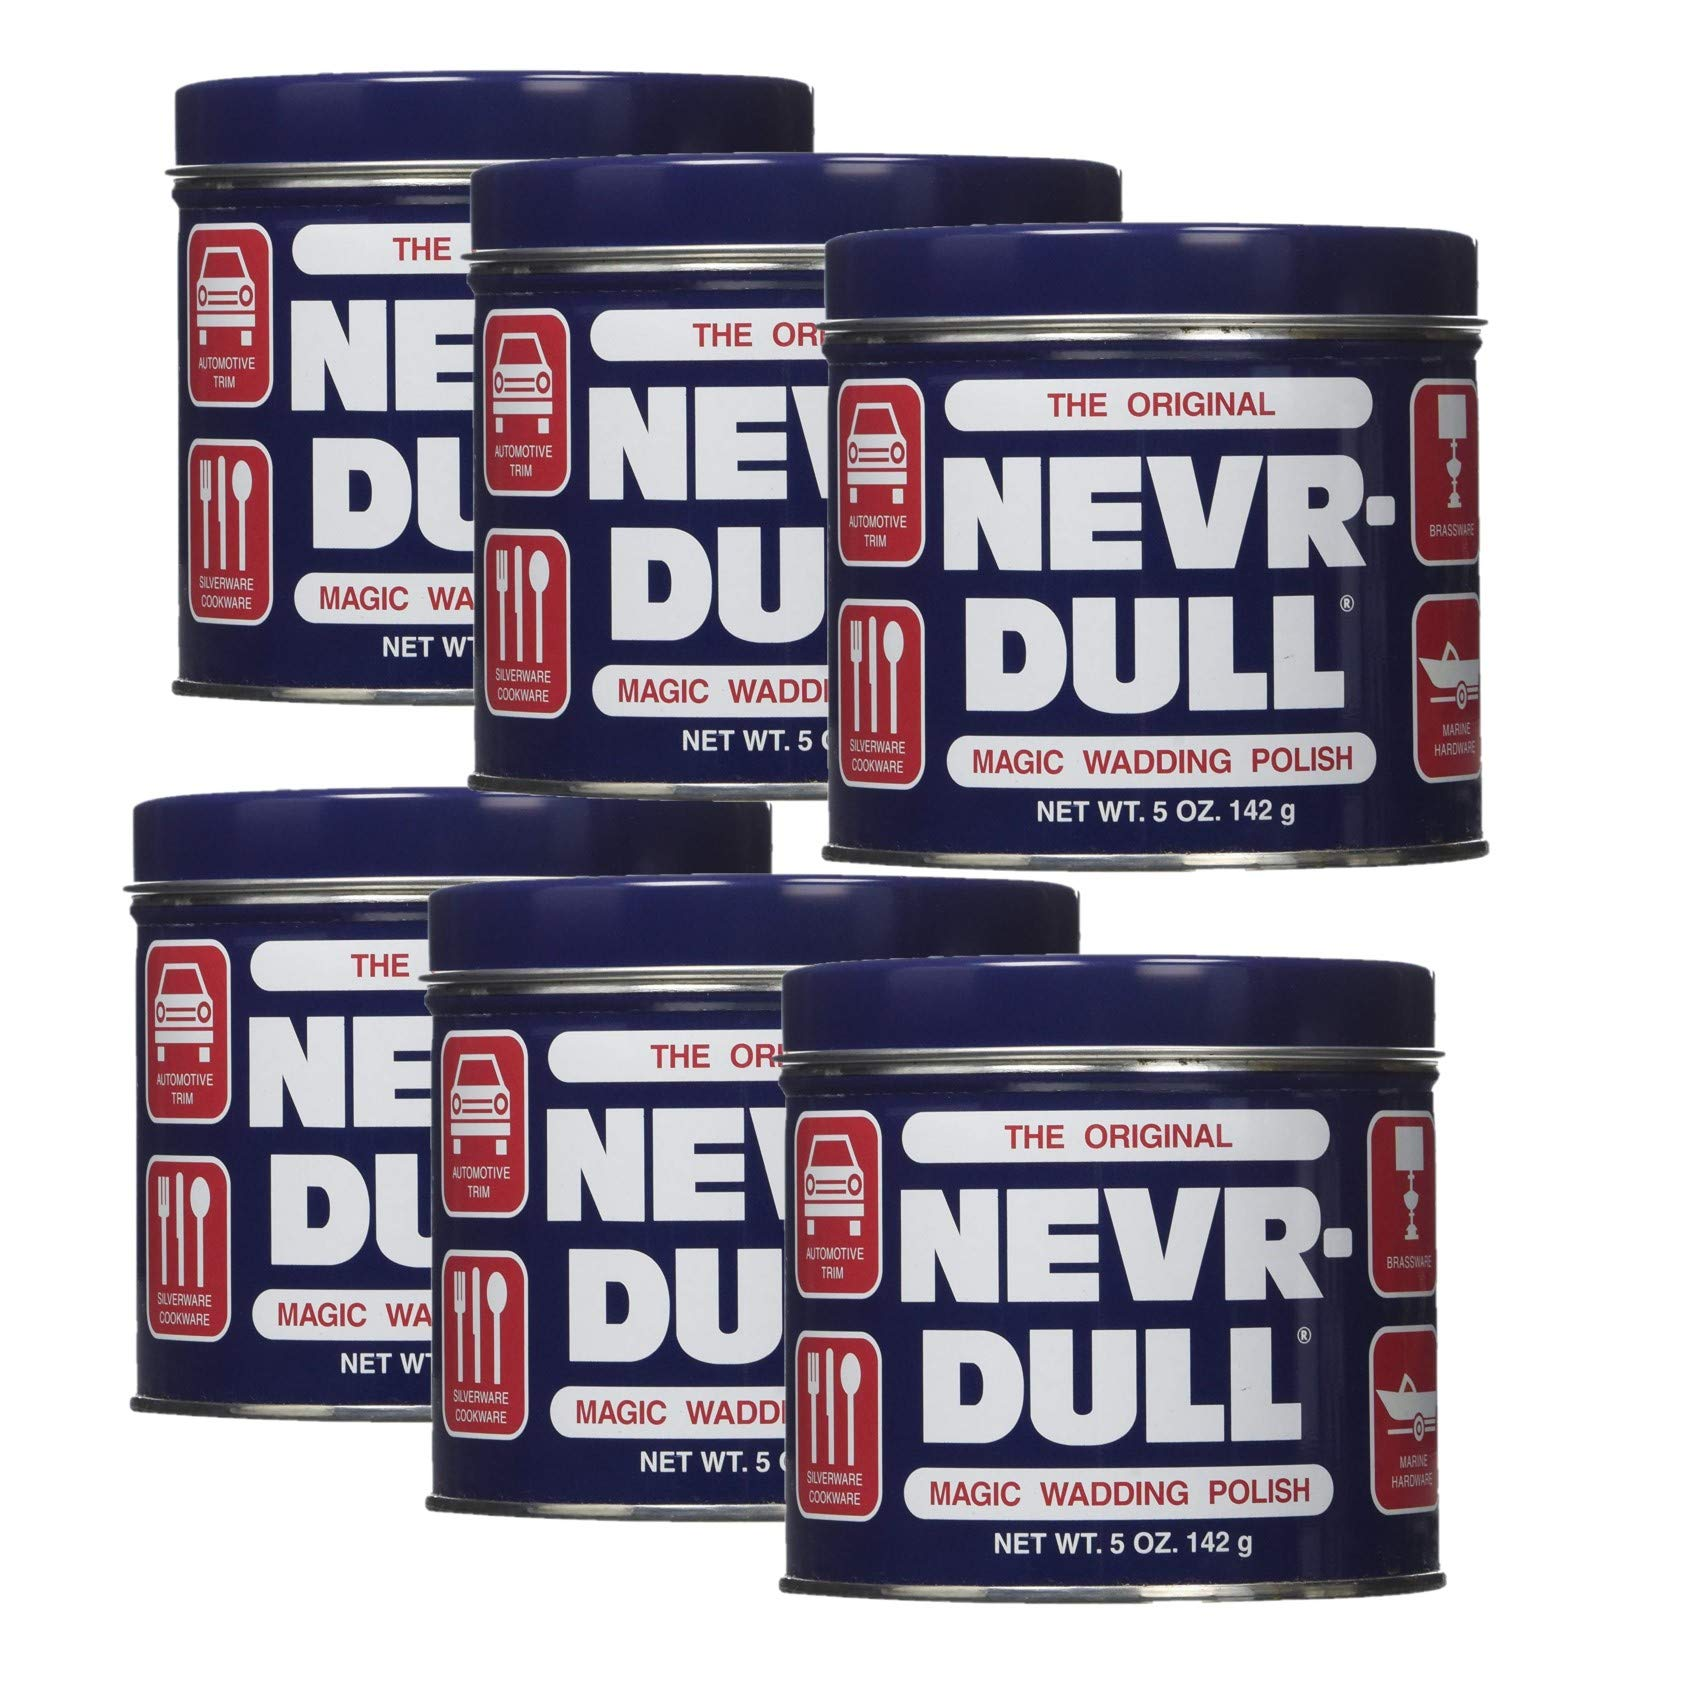 George Basch Nevr Dull Never Dull Polish 5OZ Pack of 6 by George Basch